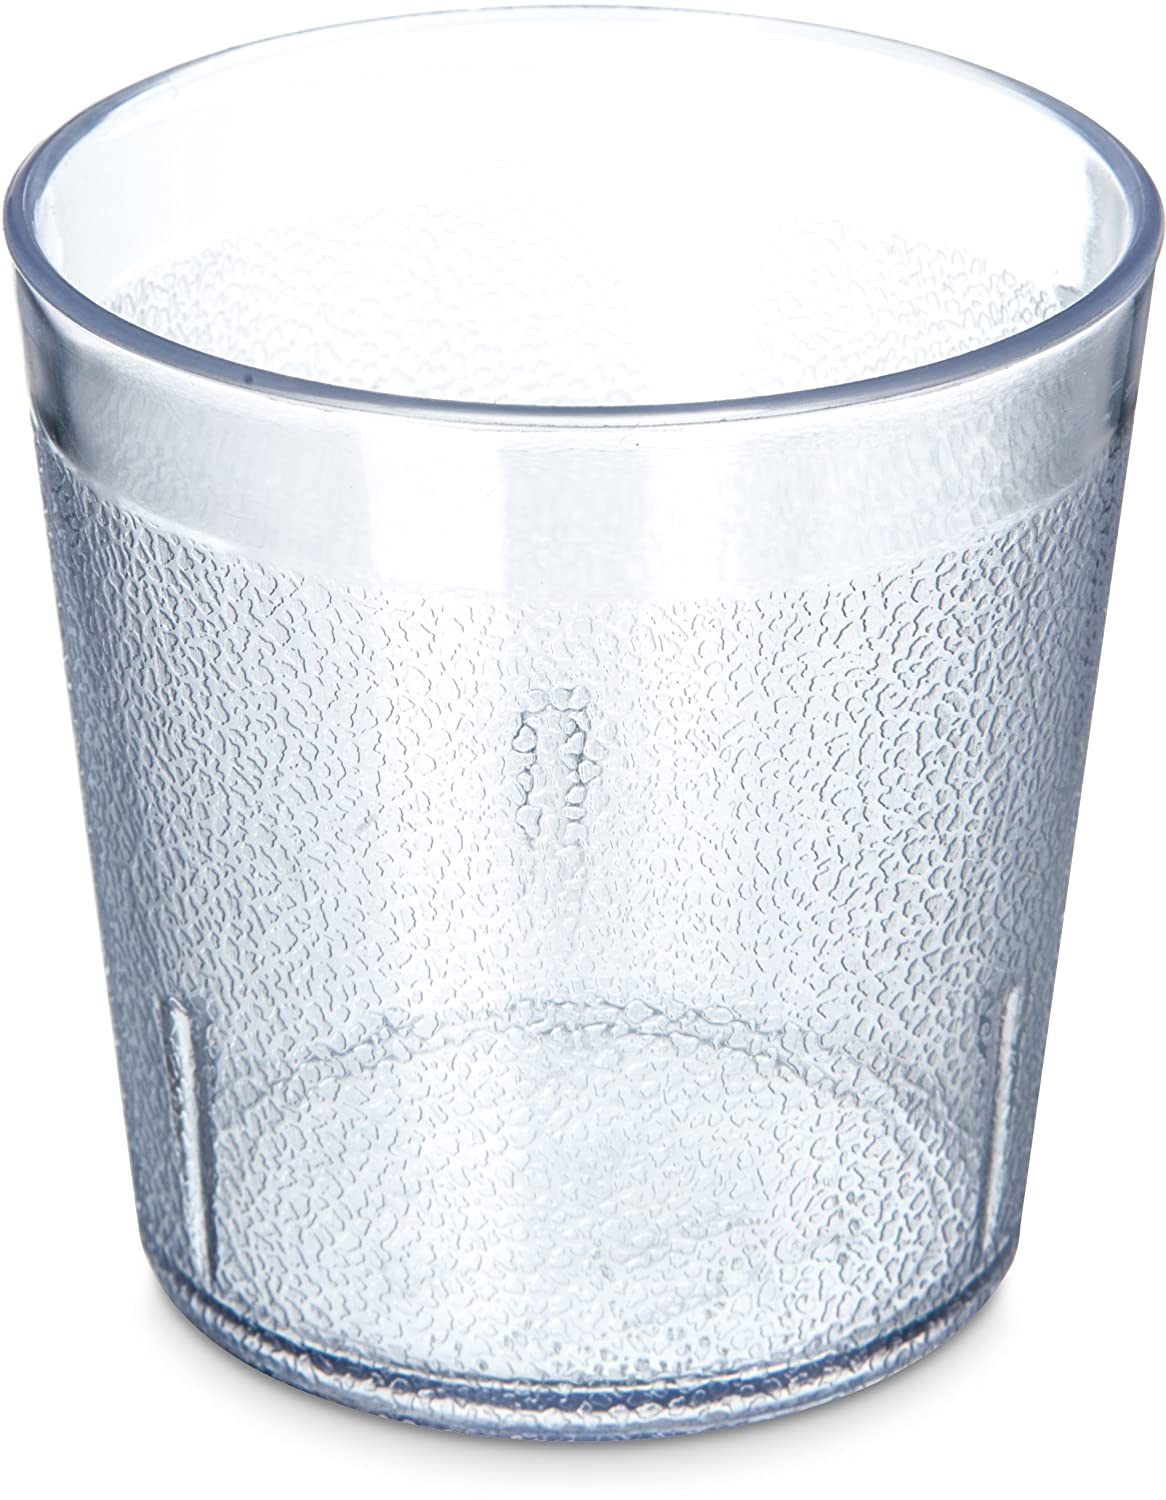 Carlisle 5529-8107 BPA Free Plastic Stackable Tumbler, 9 oz., Clear (Pack of 6)